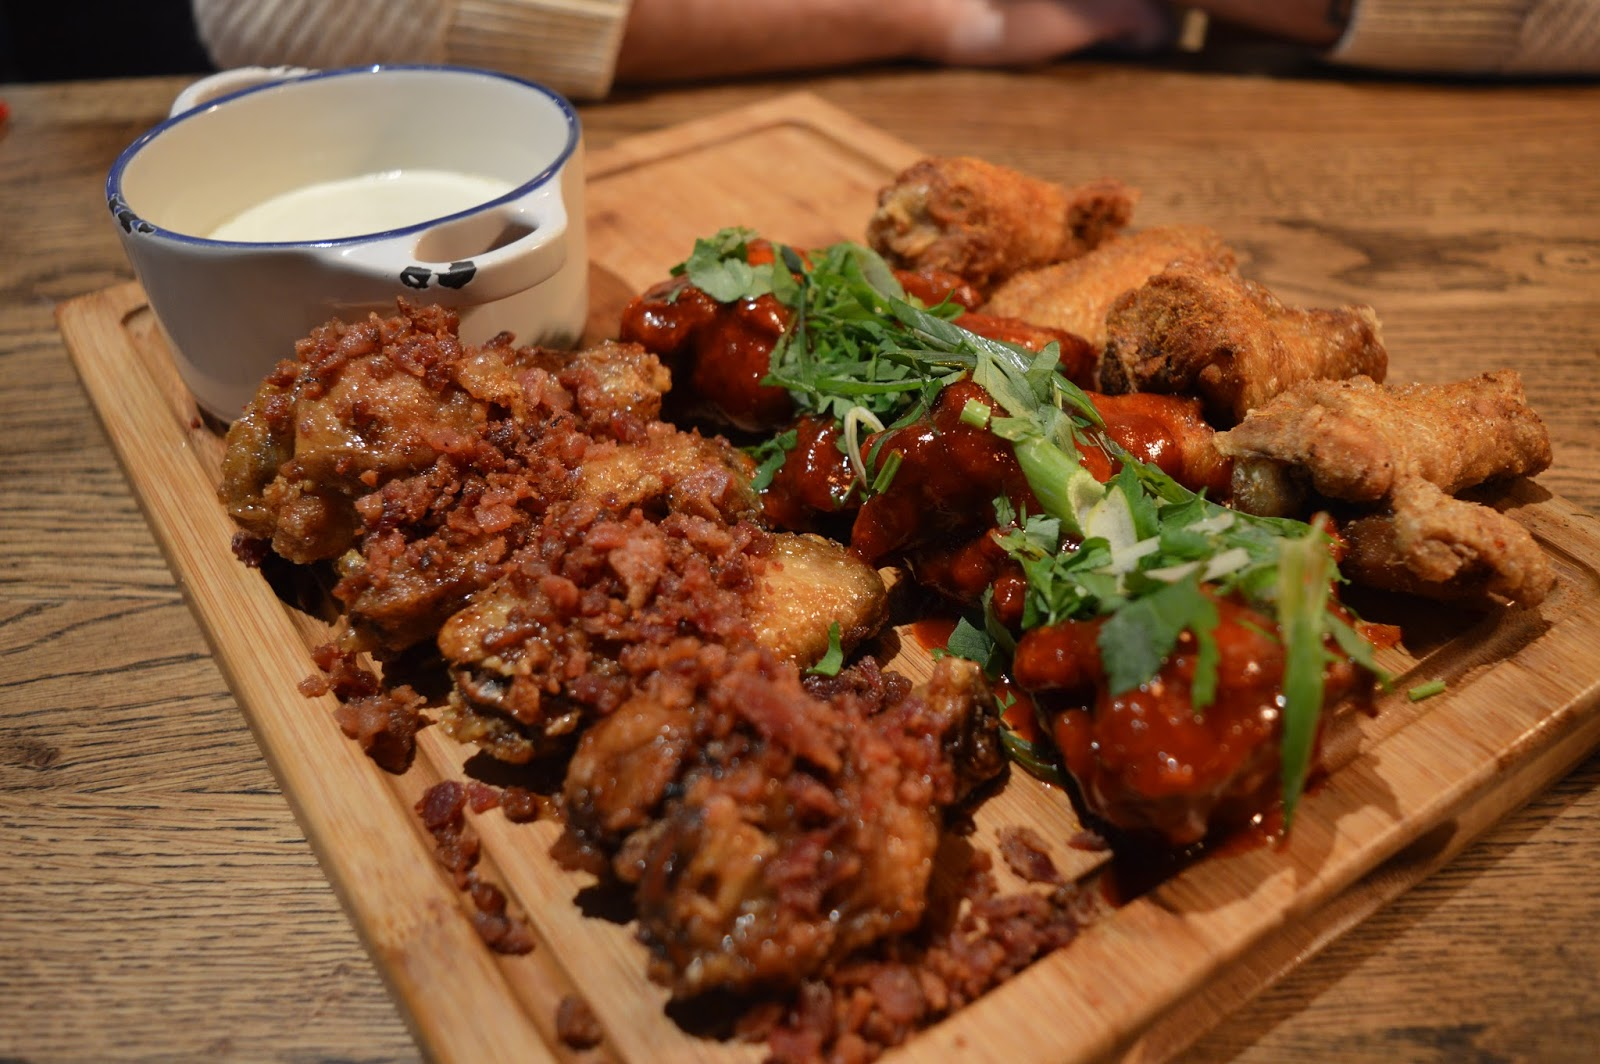 Red Dog Saloon Southampton Review, chicken wings, food blogger Hampshire, UK food blogs, Dalry Rose Blog